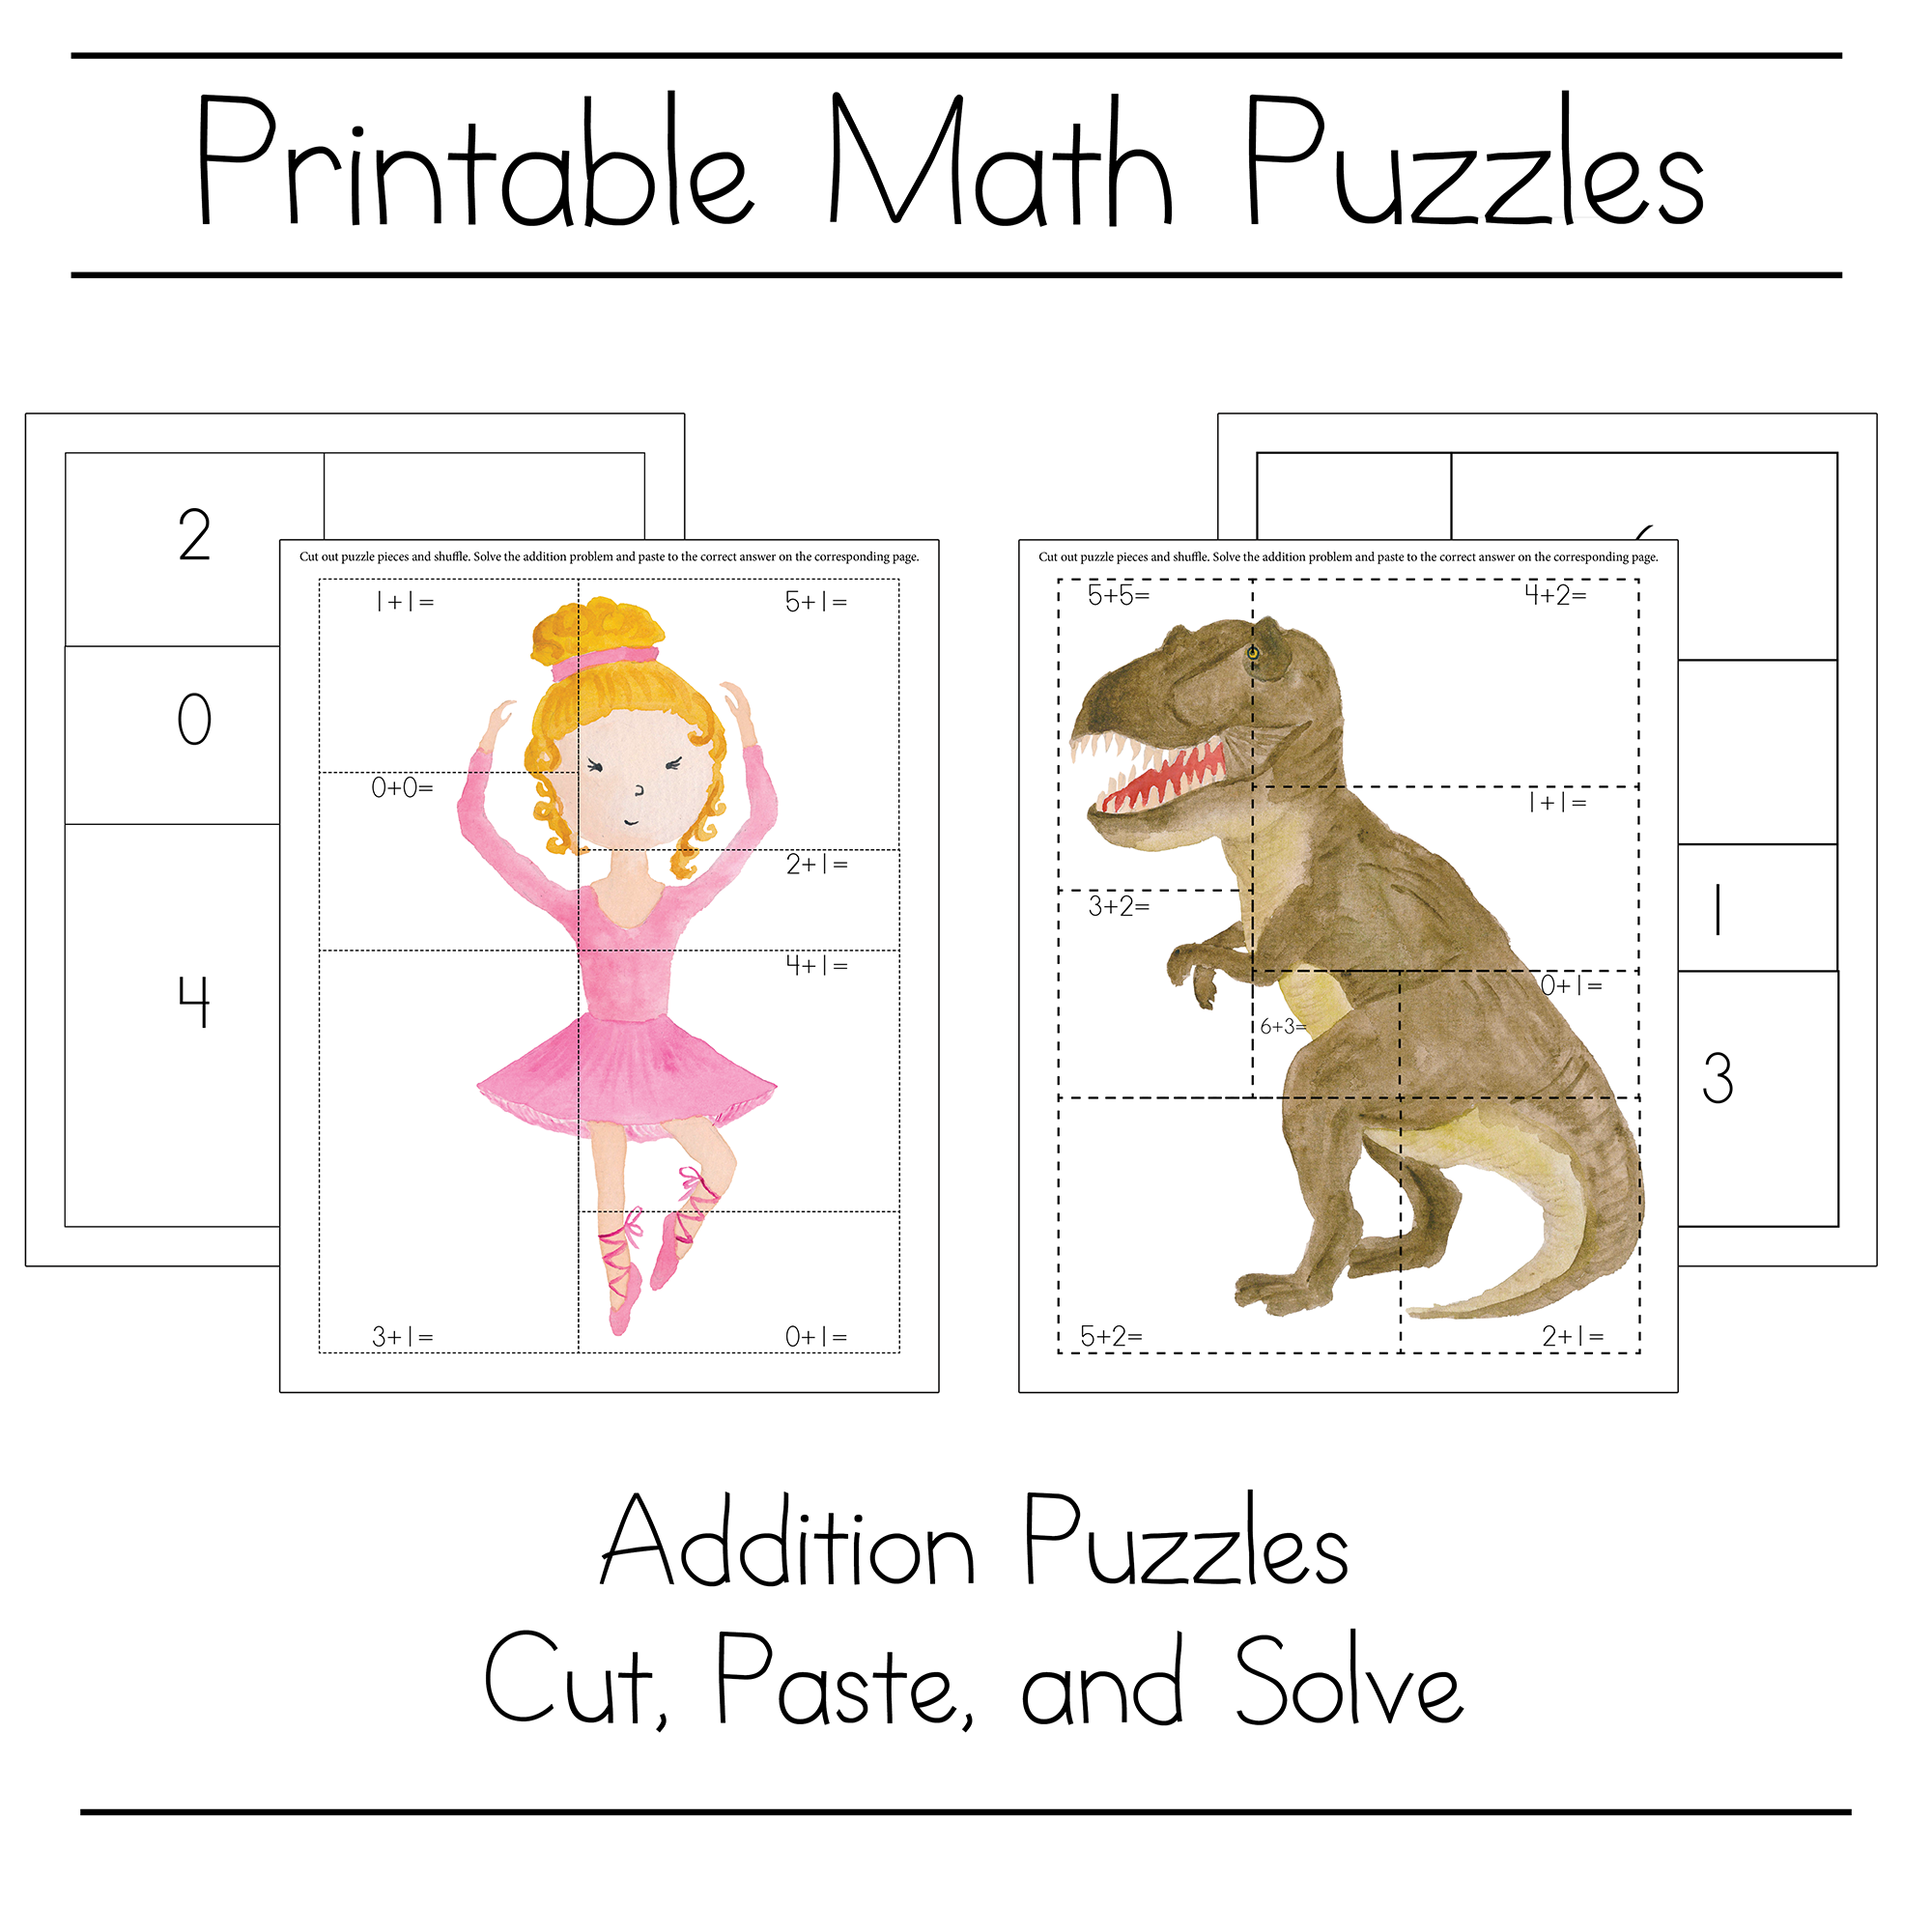 Fun Math Puzzle For Kids To Practice Math Skills - Free Download | Mathe